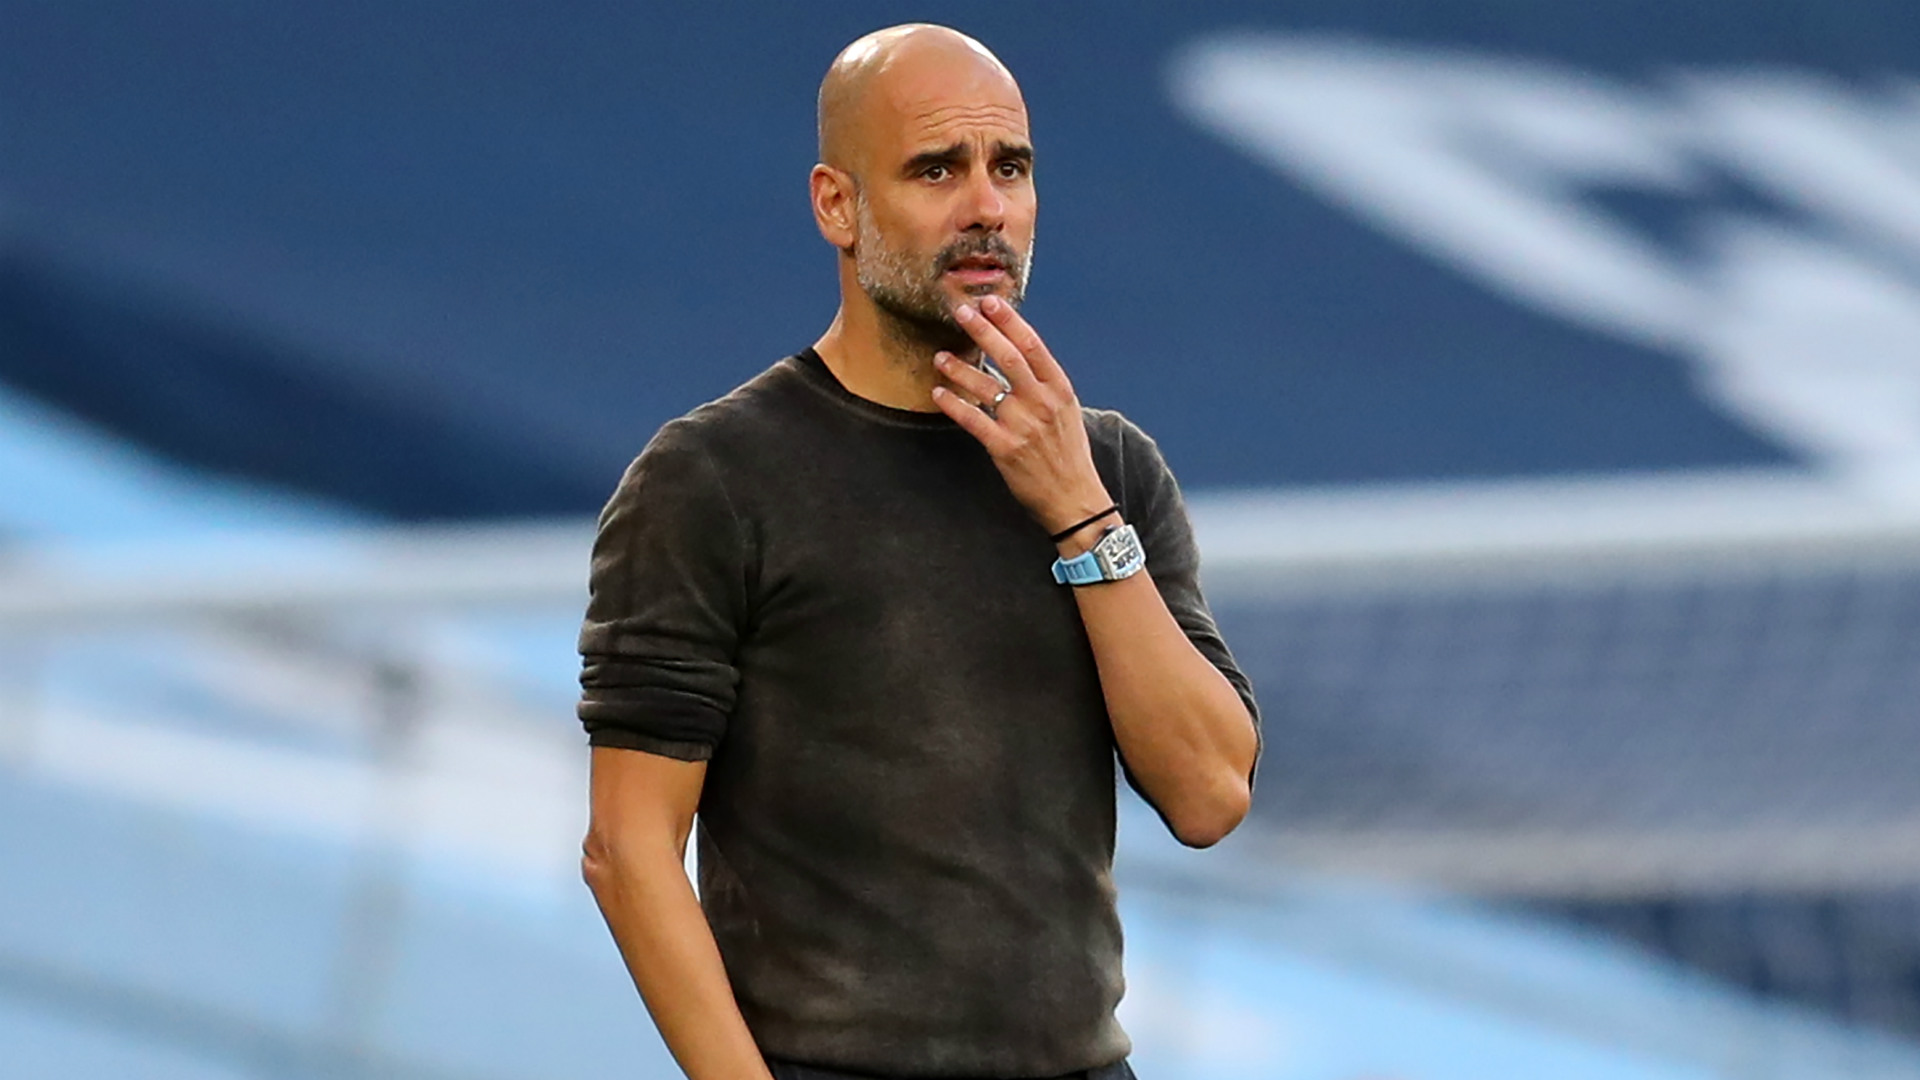 'Every season is a disadvantage' - Guardiola claims grueling schedule hinders English clubs in Europe